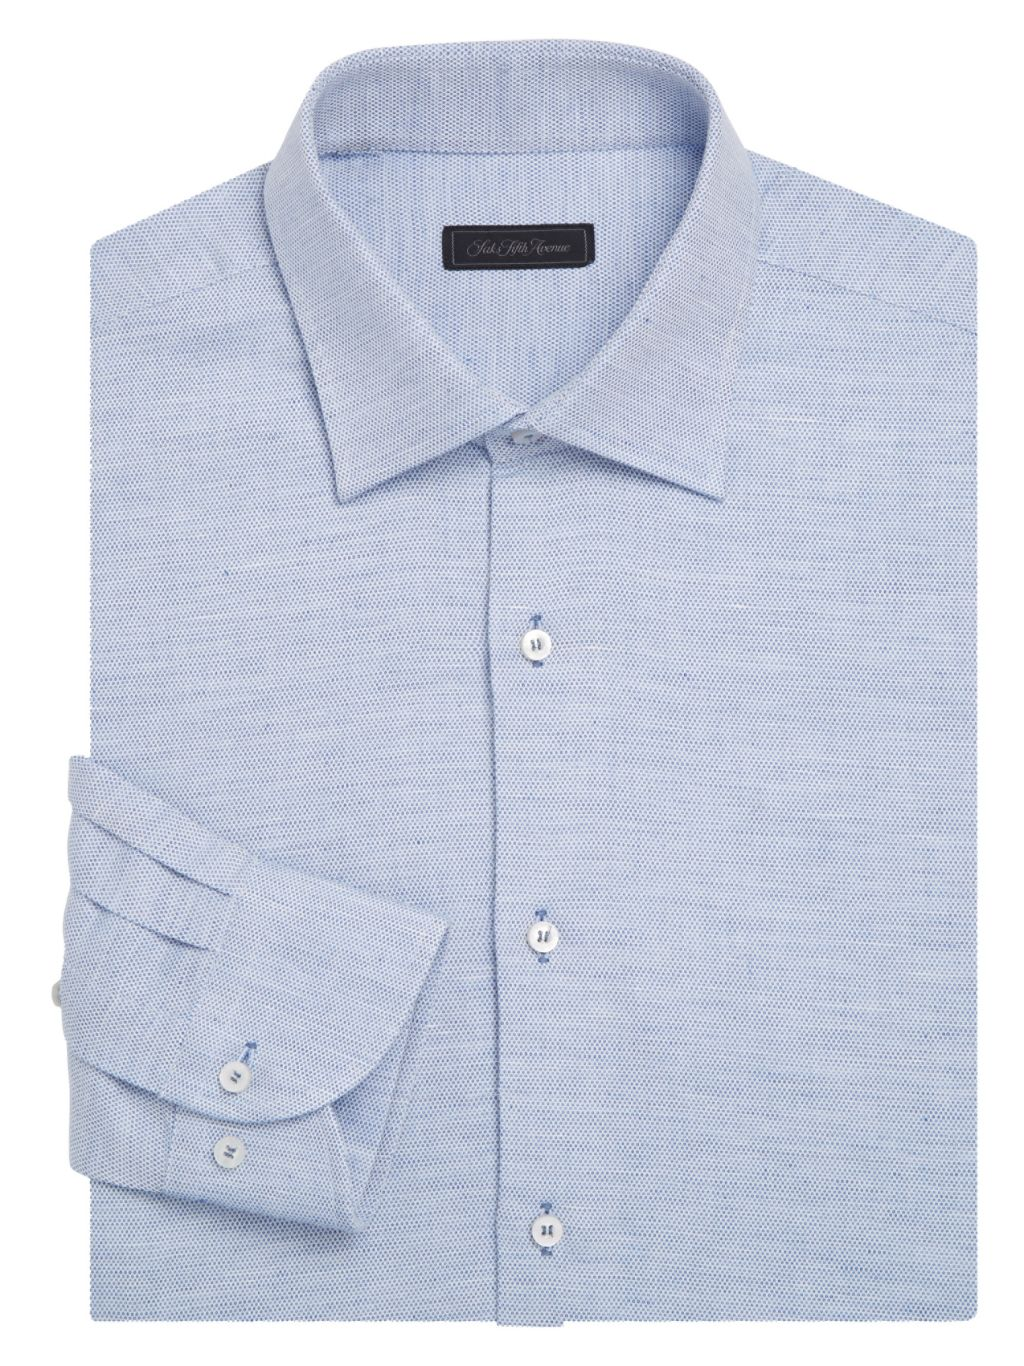 Saks Fifth Avenue COLLECTION Classic-Fit Textured Cotton Dobby Dress Shirt